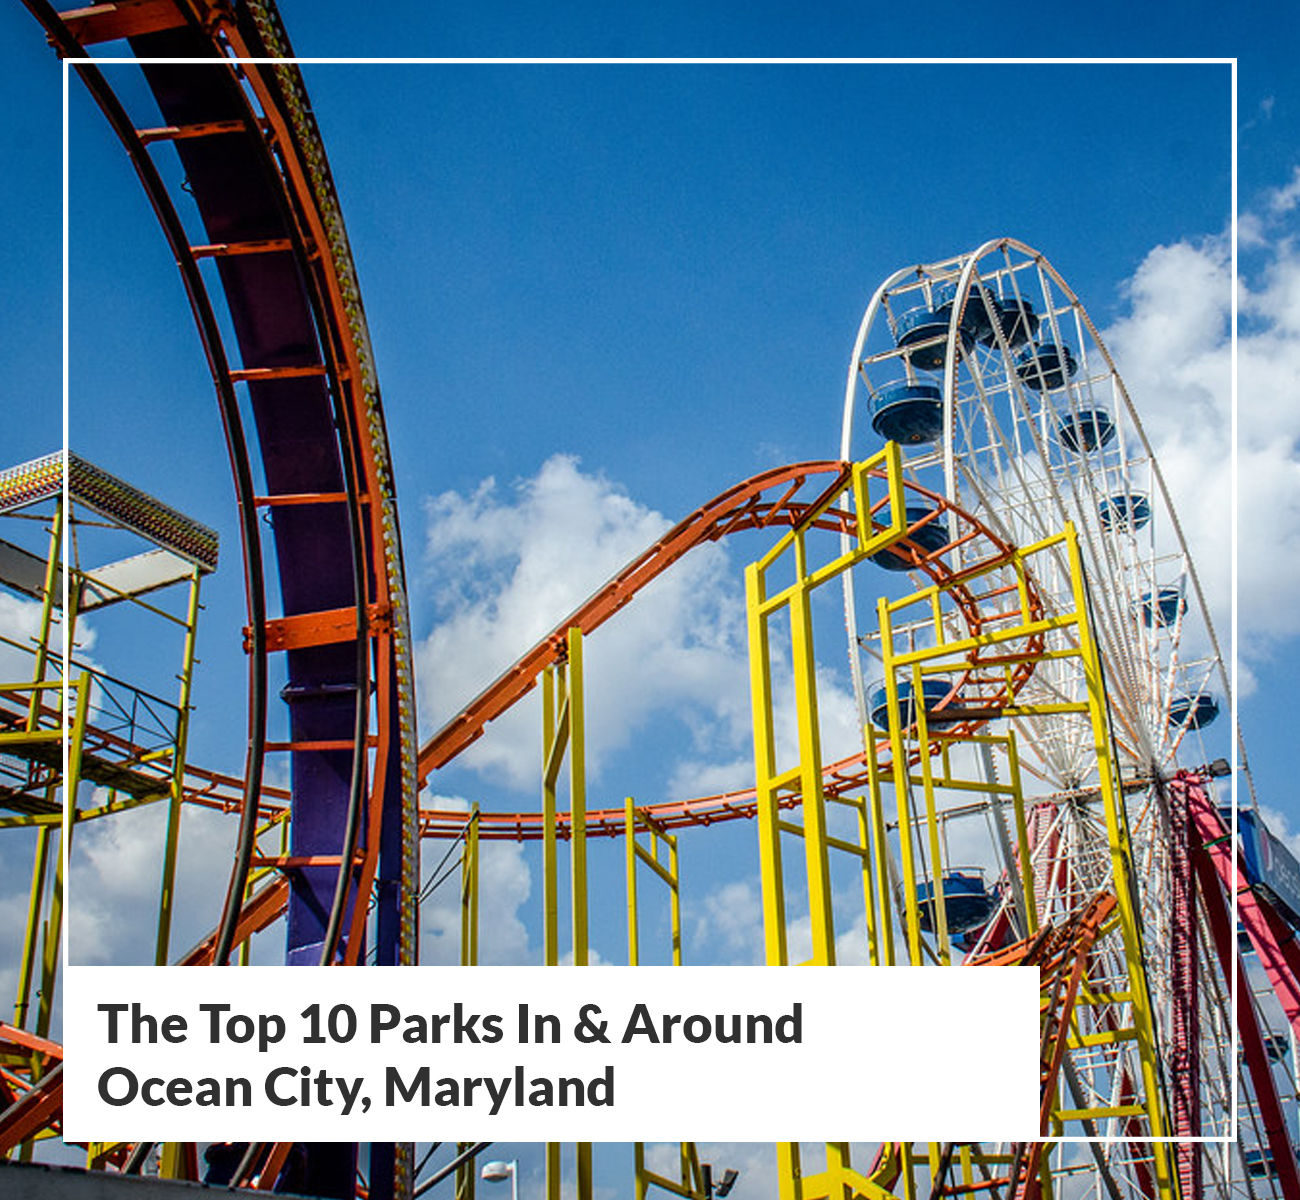 Top 10 Parks In & Around Ocean City, Maryland